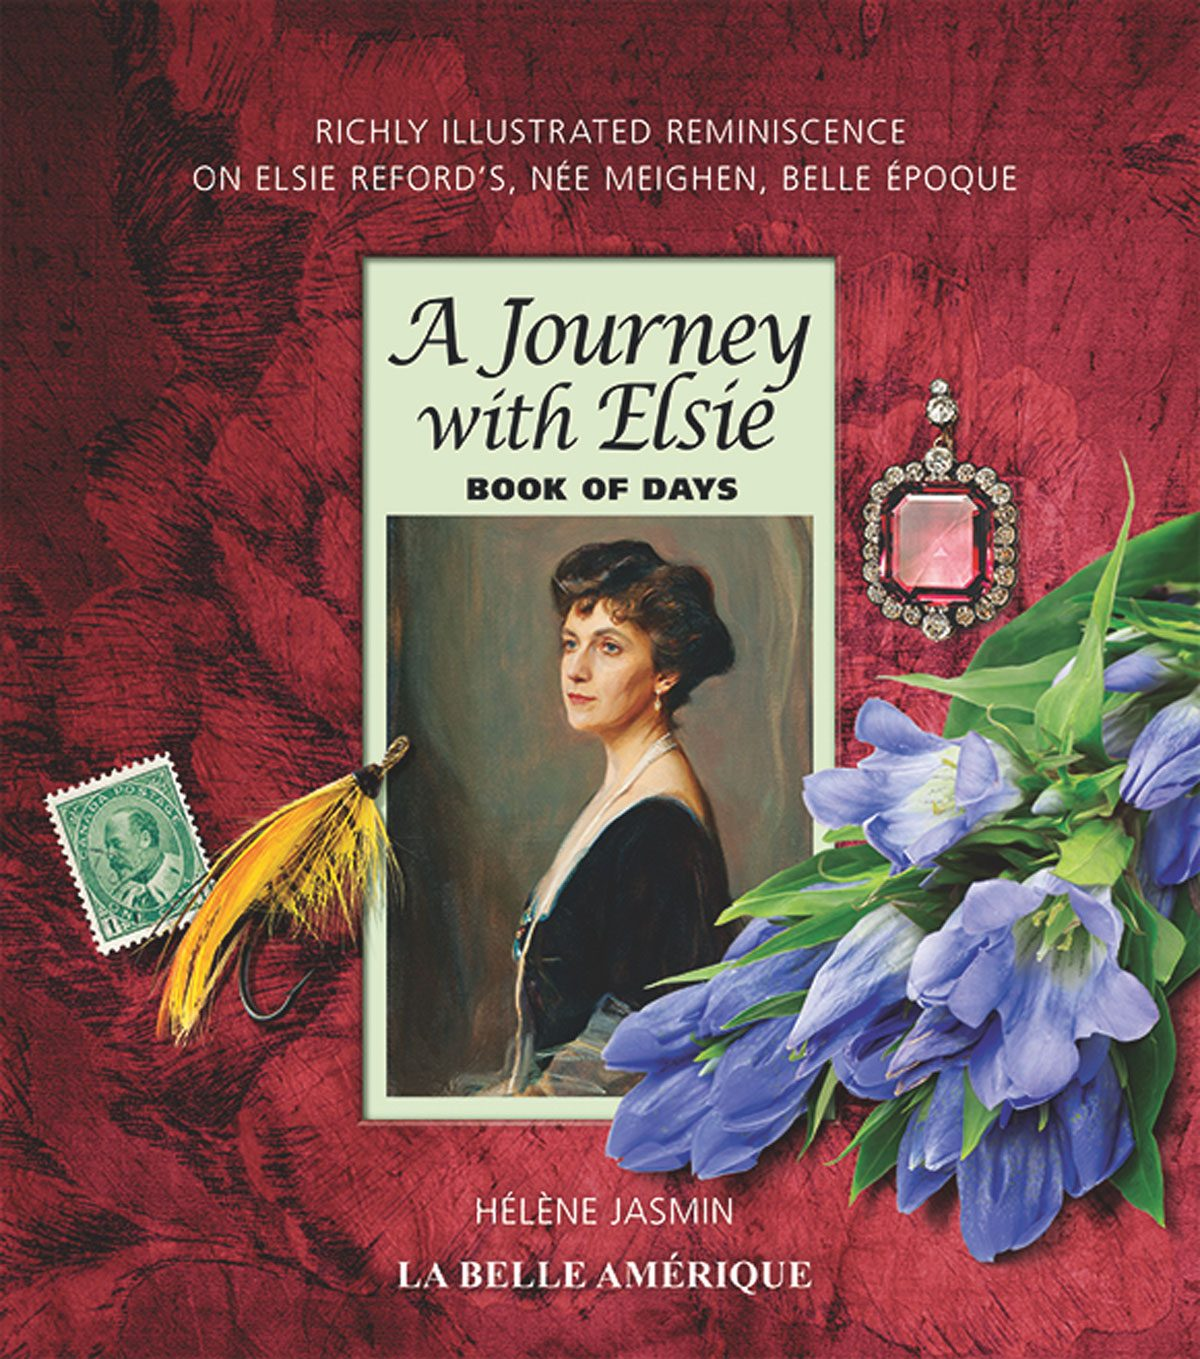 A Journey with Elsie